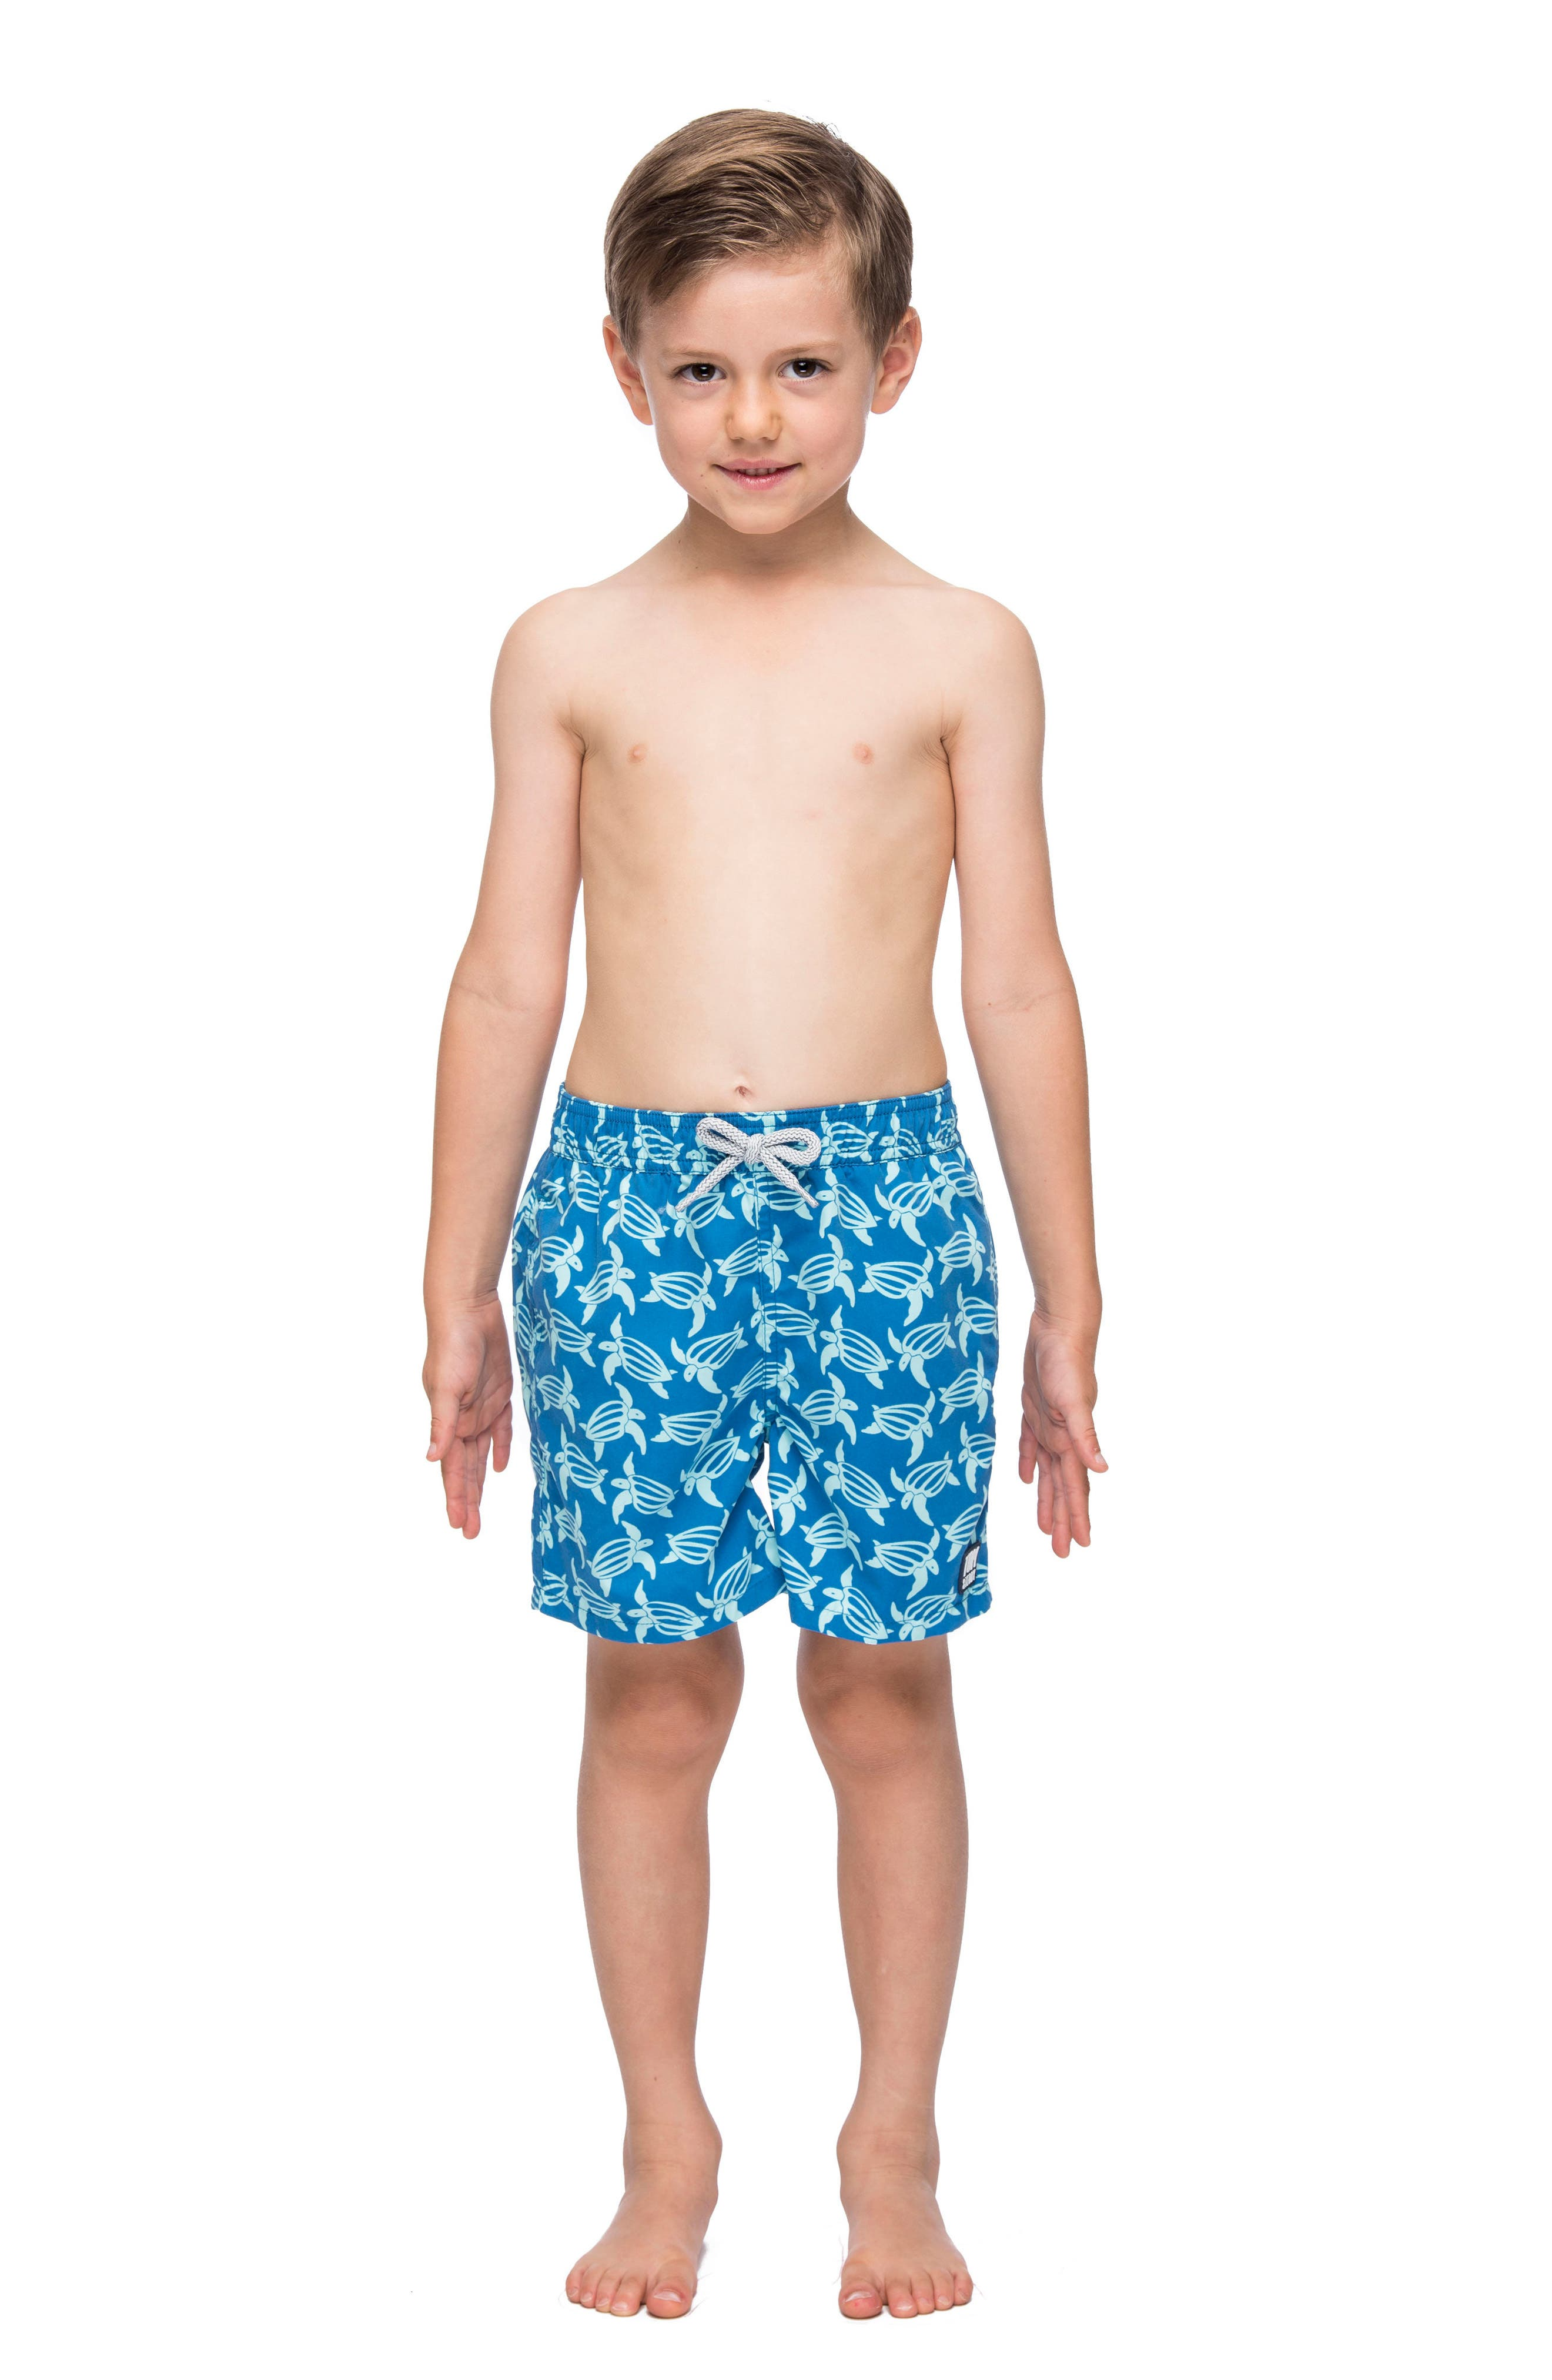 Turtle Swim Trunks,                             Alternate thumbnail 3, color,                             Mid Blue/ Sky